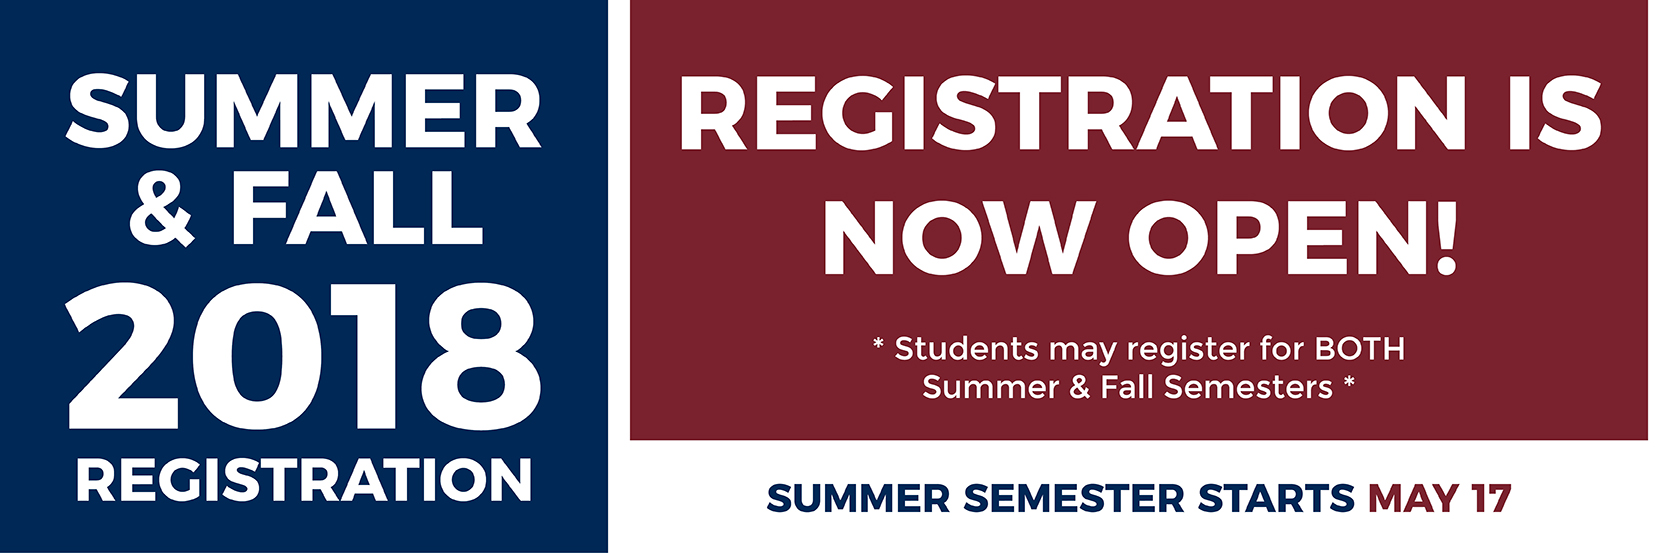 Summer & Fall 2018 Registration is now open. Summer Semester Begins May 17.